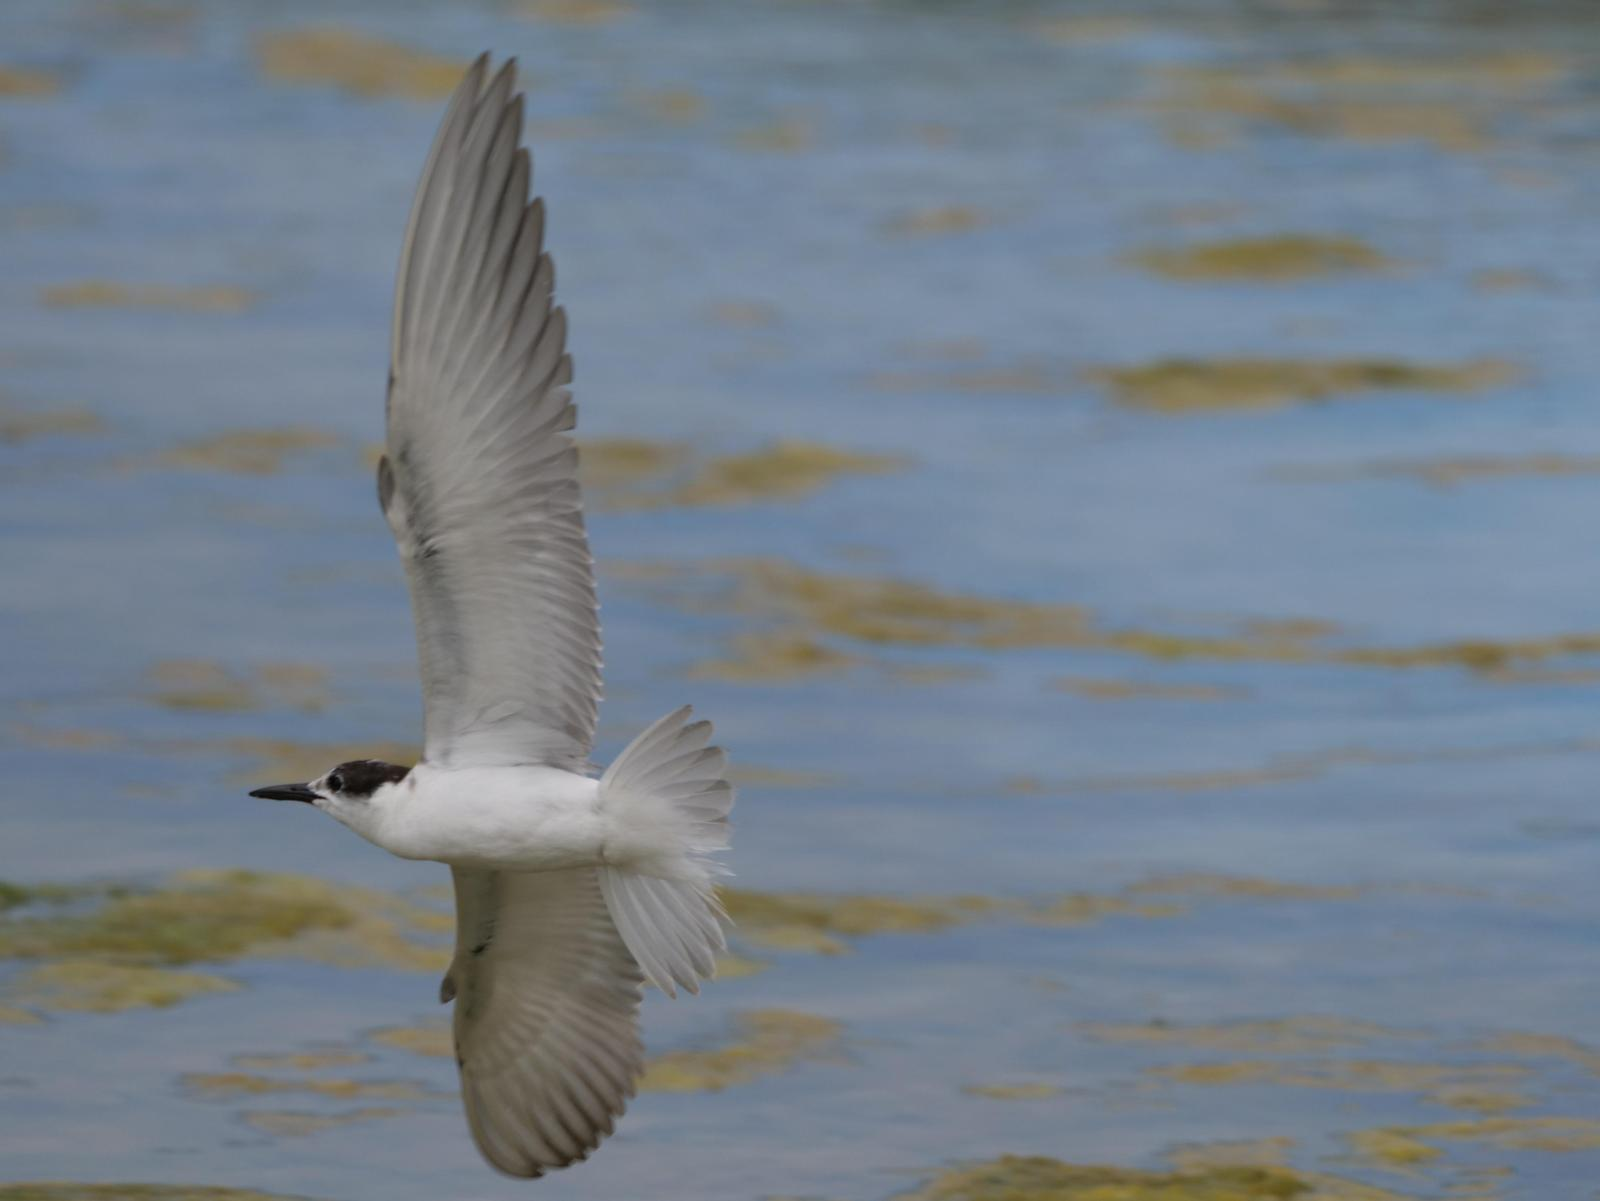 Whiskered Tern Photo by Peter Lowe